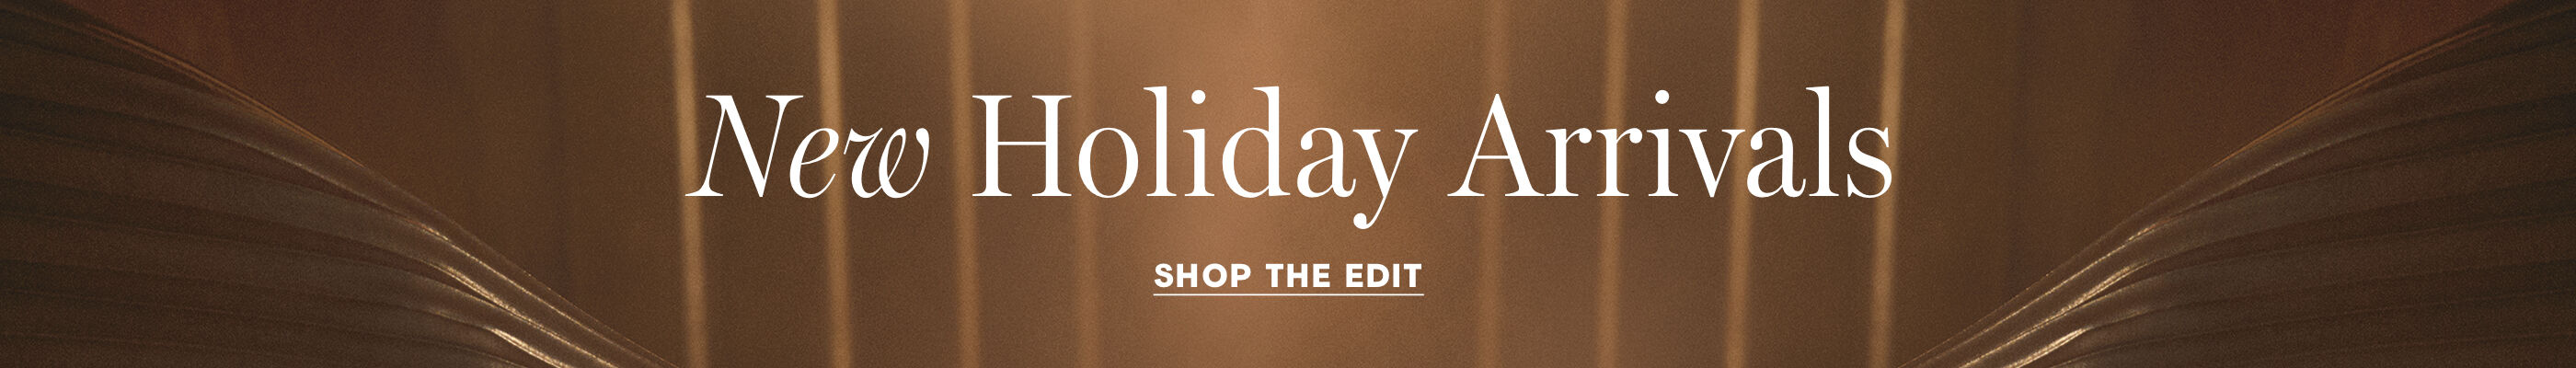 New Holiday Arrivals